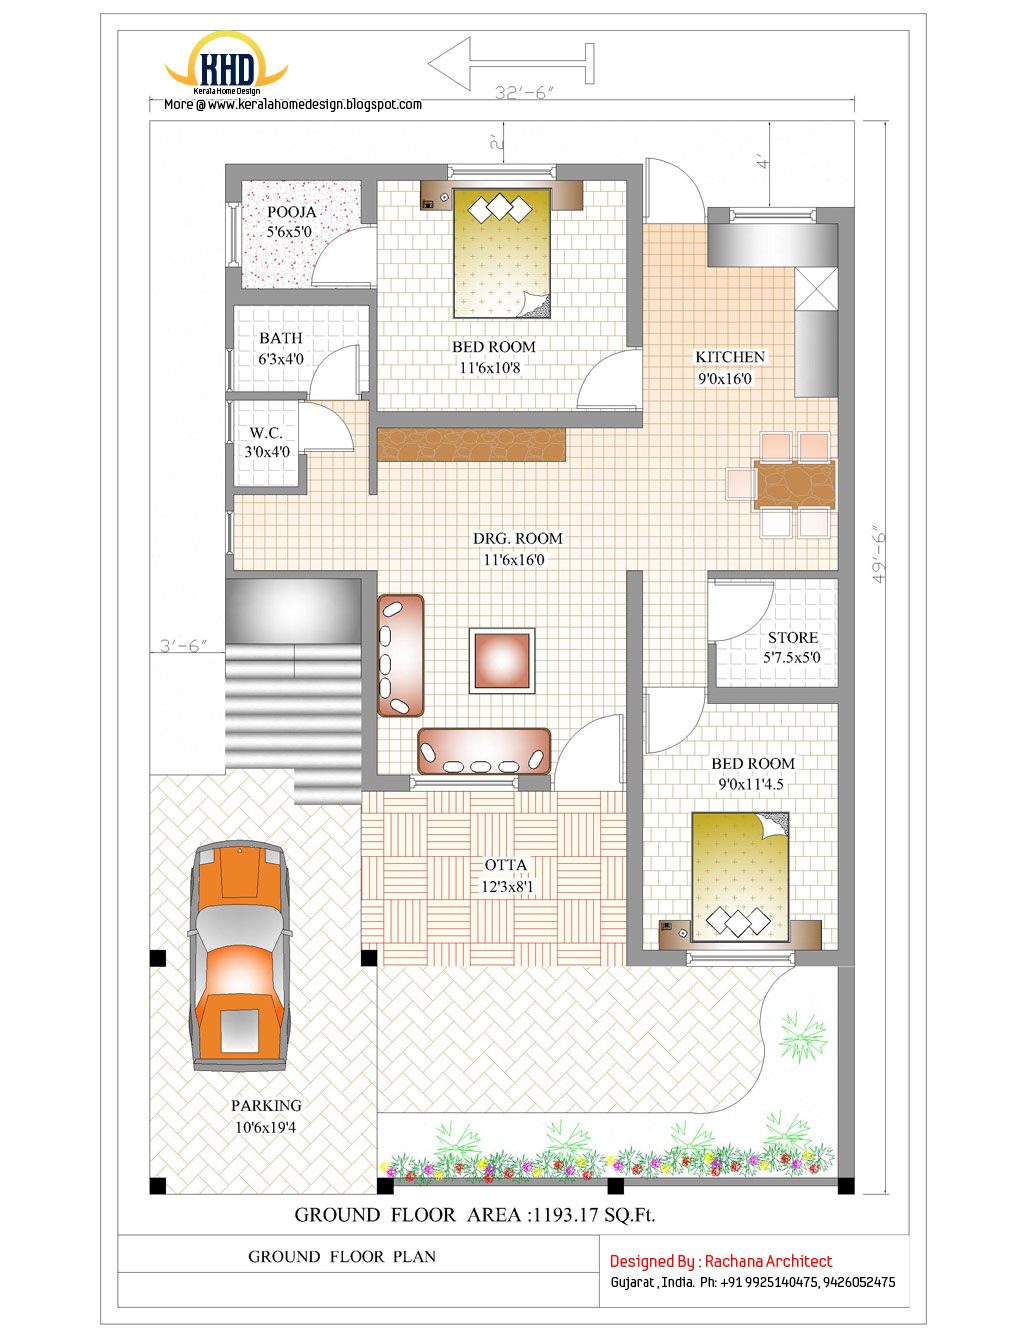 Contemporary india house plan 2185 sq ft home appliance for Floor plans of houses in india